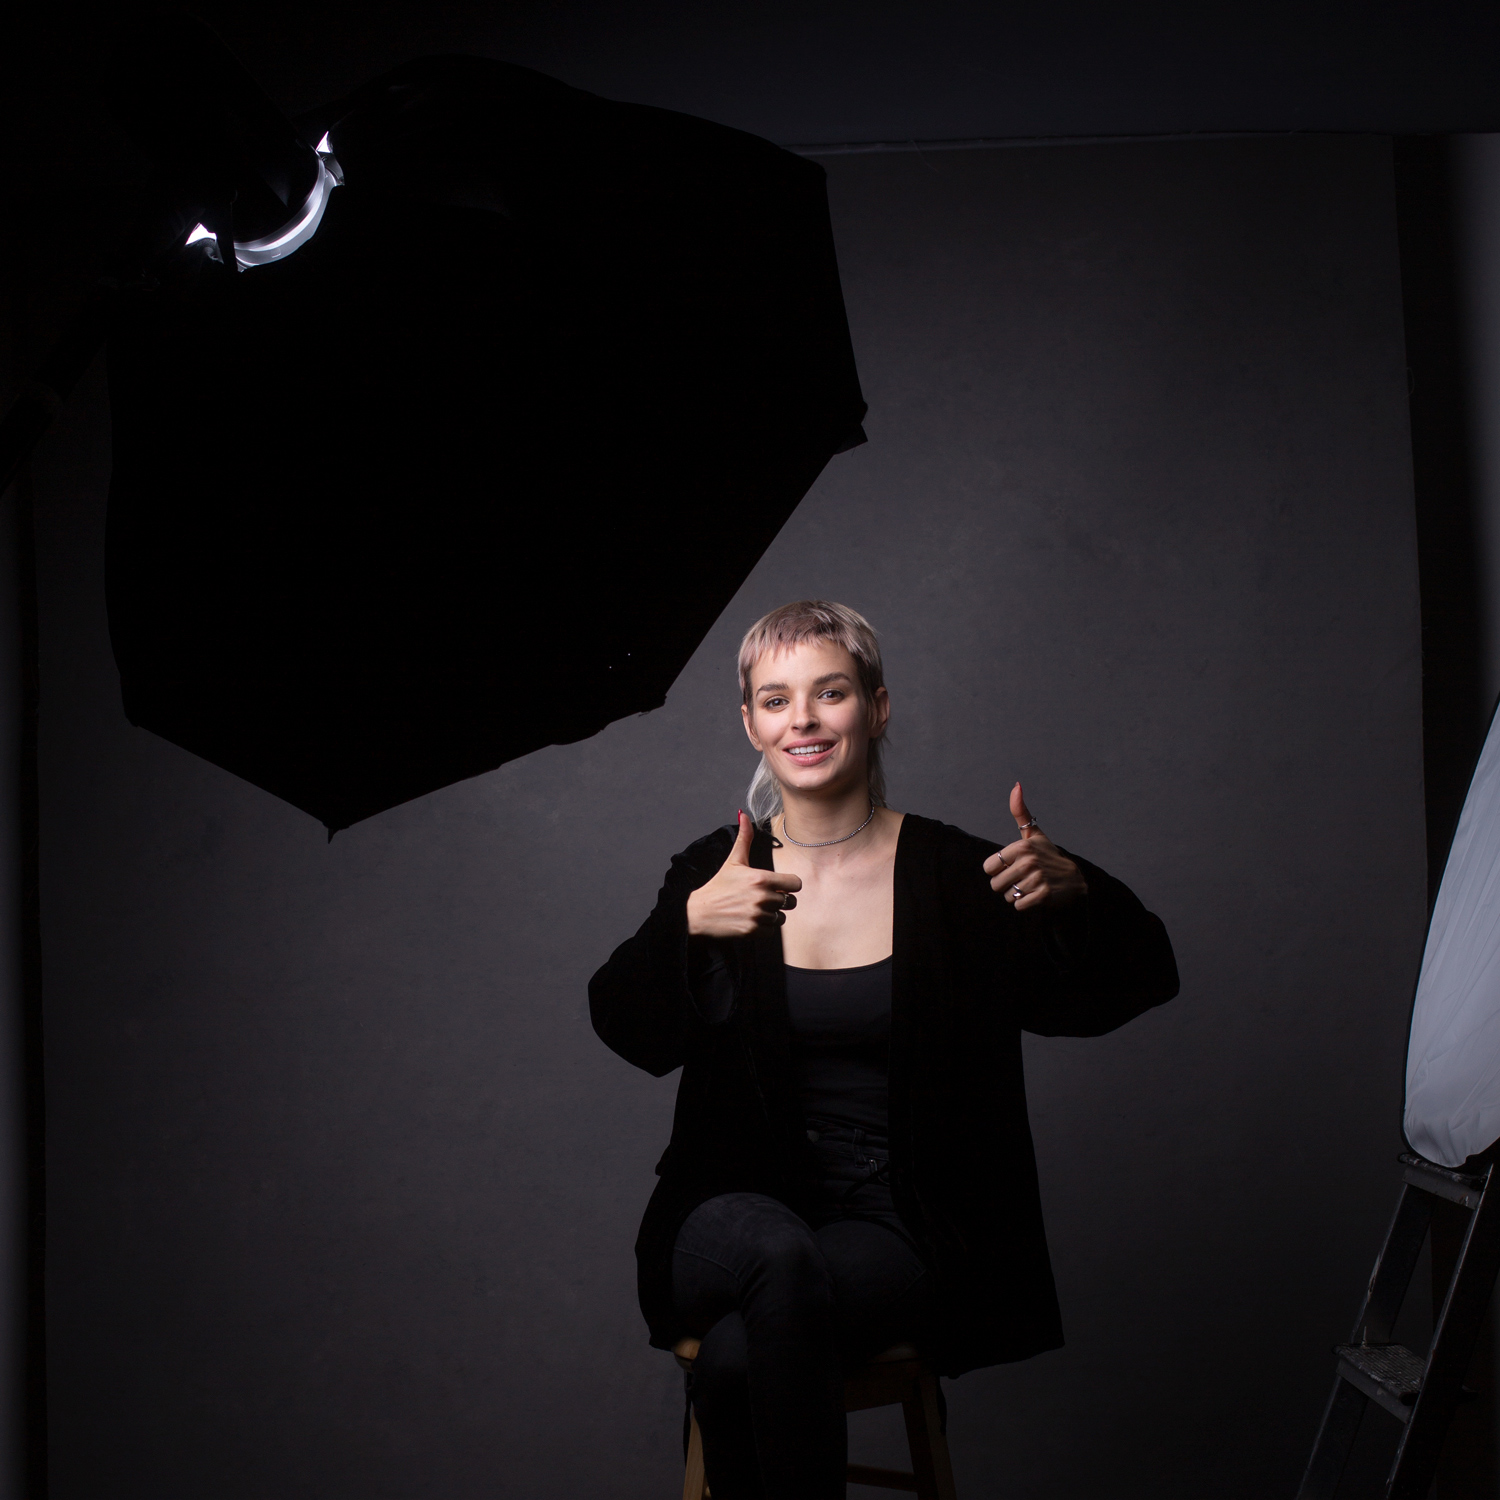 guidelines for photographers portrait thumbs up